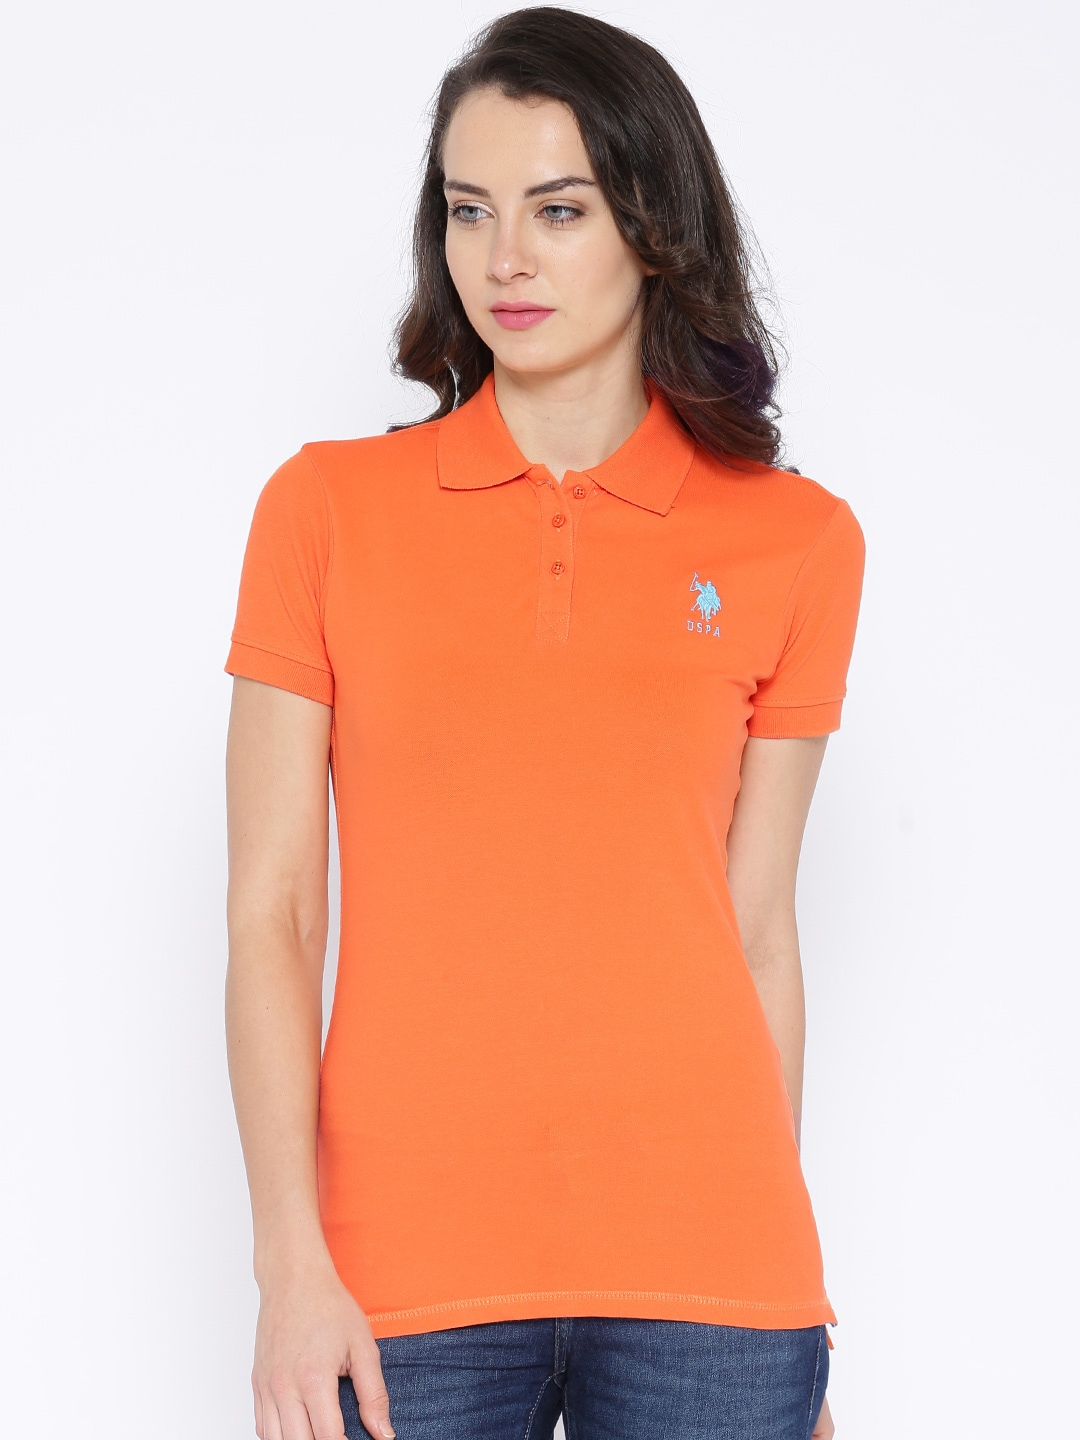 U S Polo T-Shirts - Buy U S Polo T-Shirts For Men   Women  8a4a69340a35